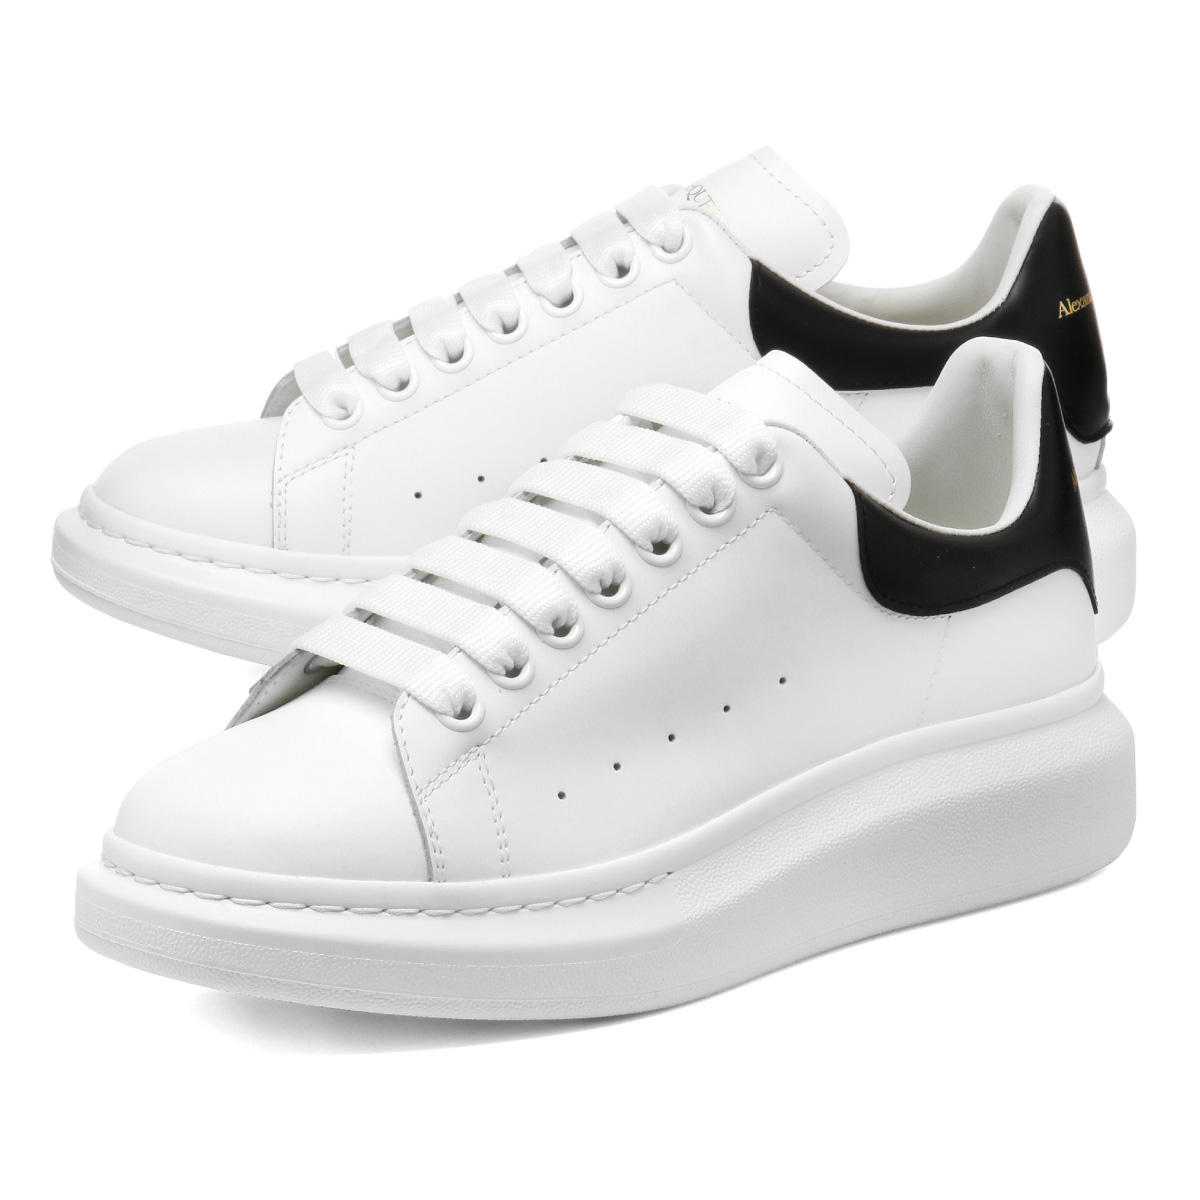 553680 Alexander McQueen ALEXANDER McQUEEN shoes men WHGP5 9061 sneakers  WHITE/BLACK white